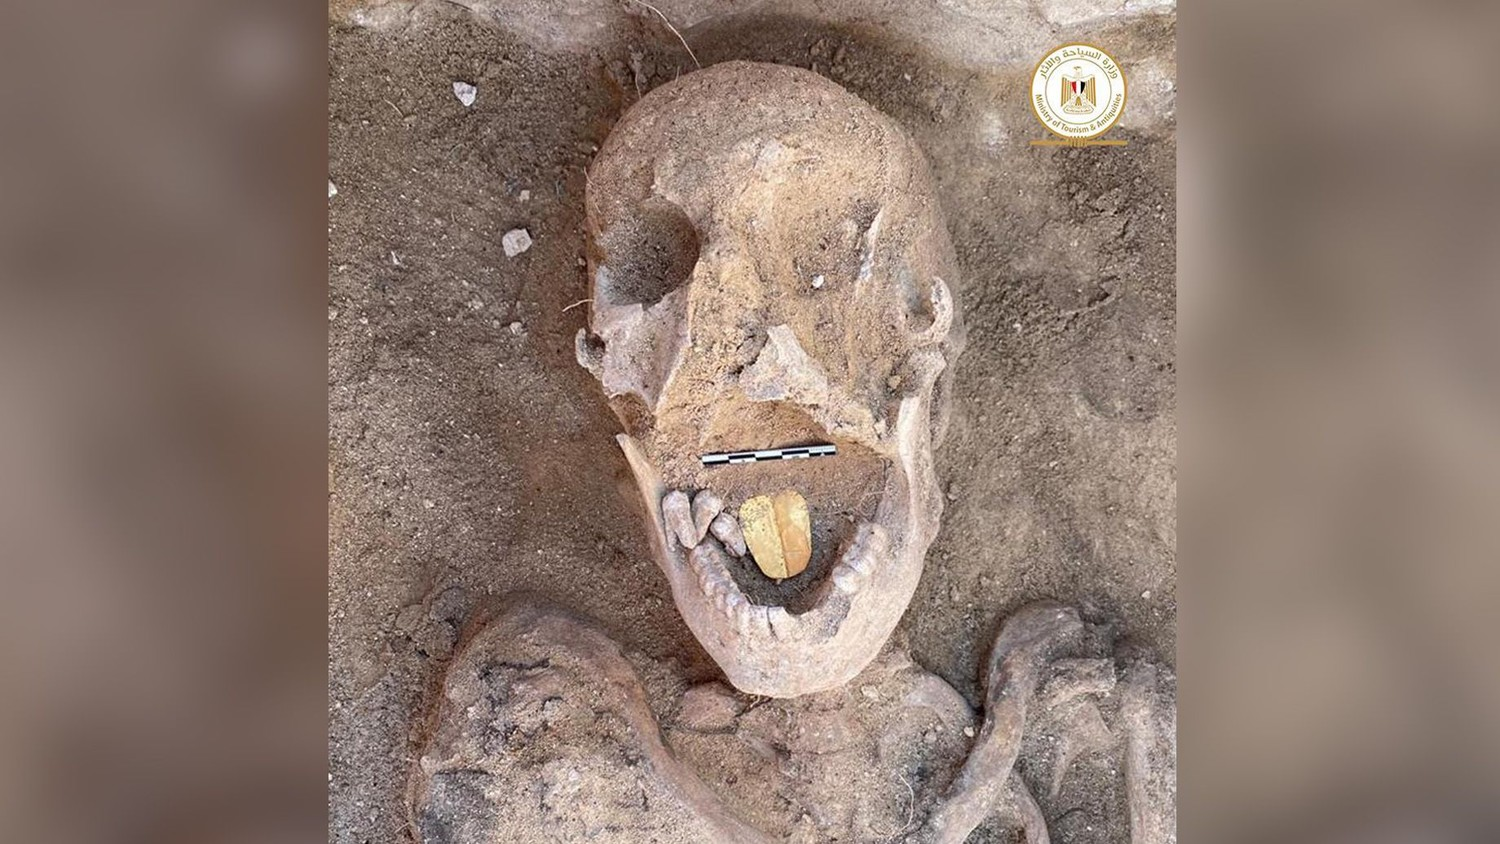 2 000 year old mummy with a golden tongue found in Egypt